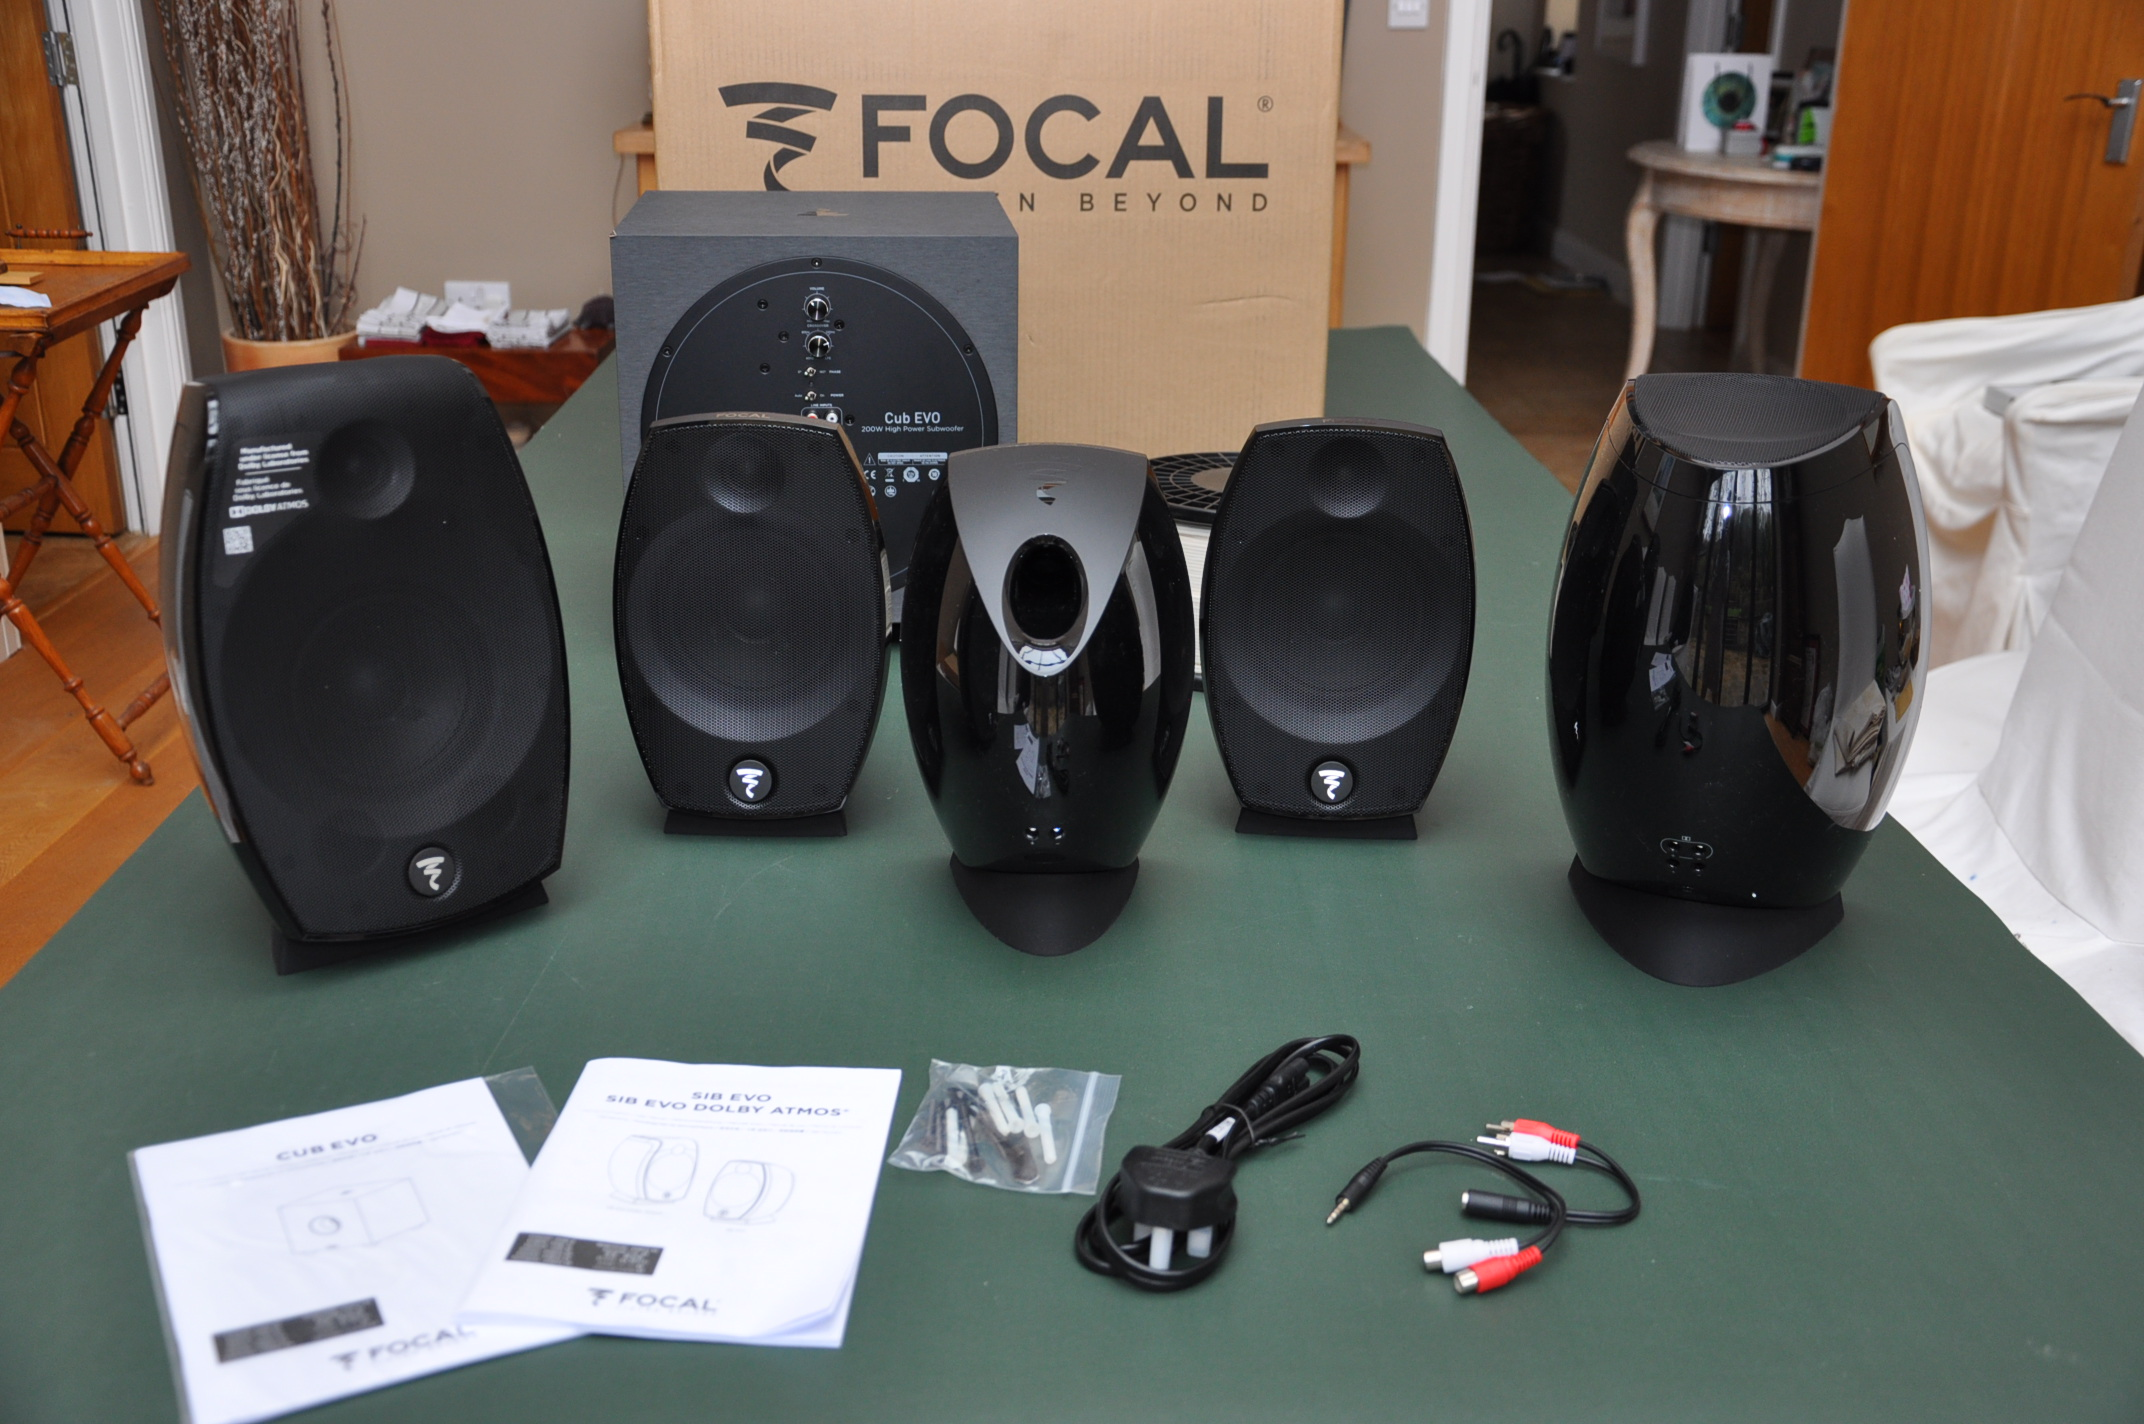 Focal Sib Evo 5 1 2 AV Review - HiFi and Music Source